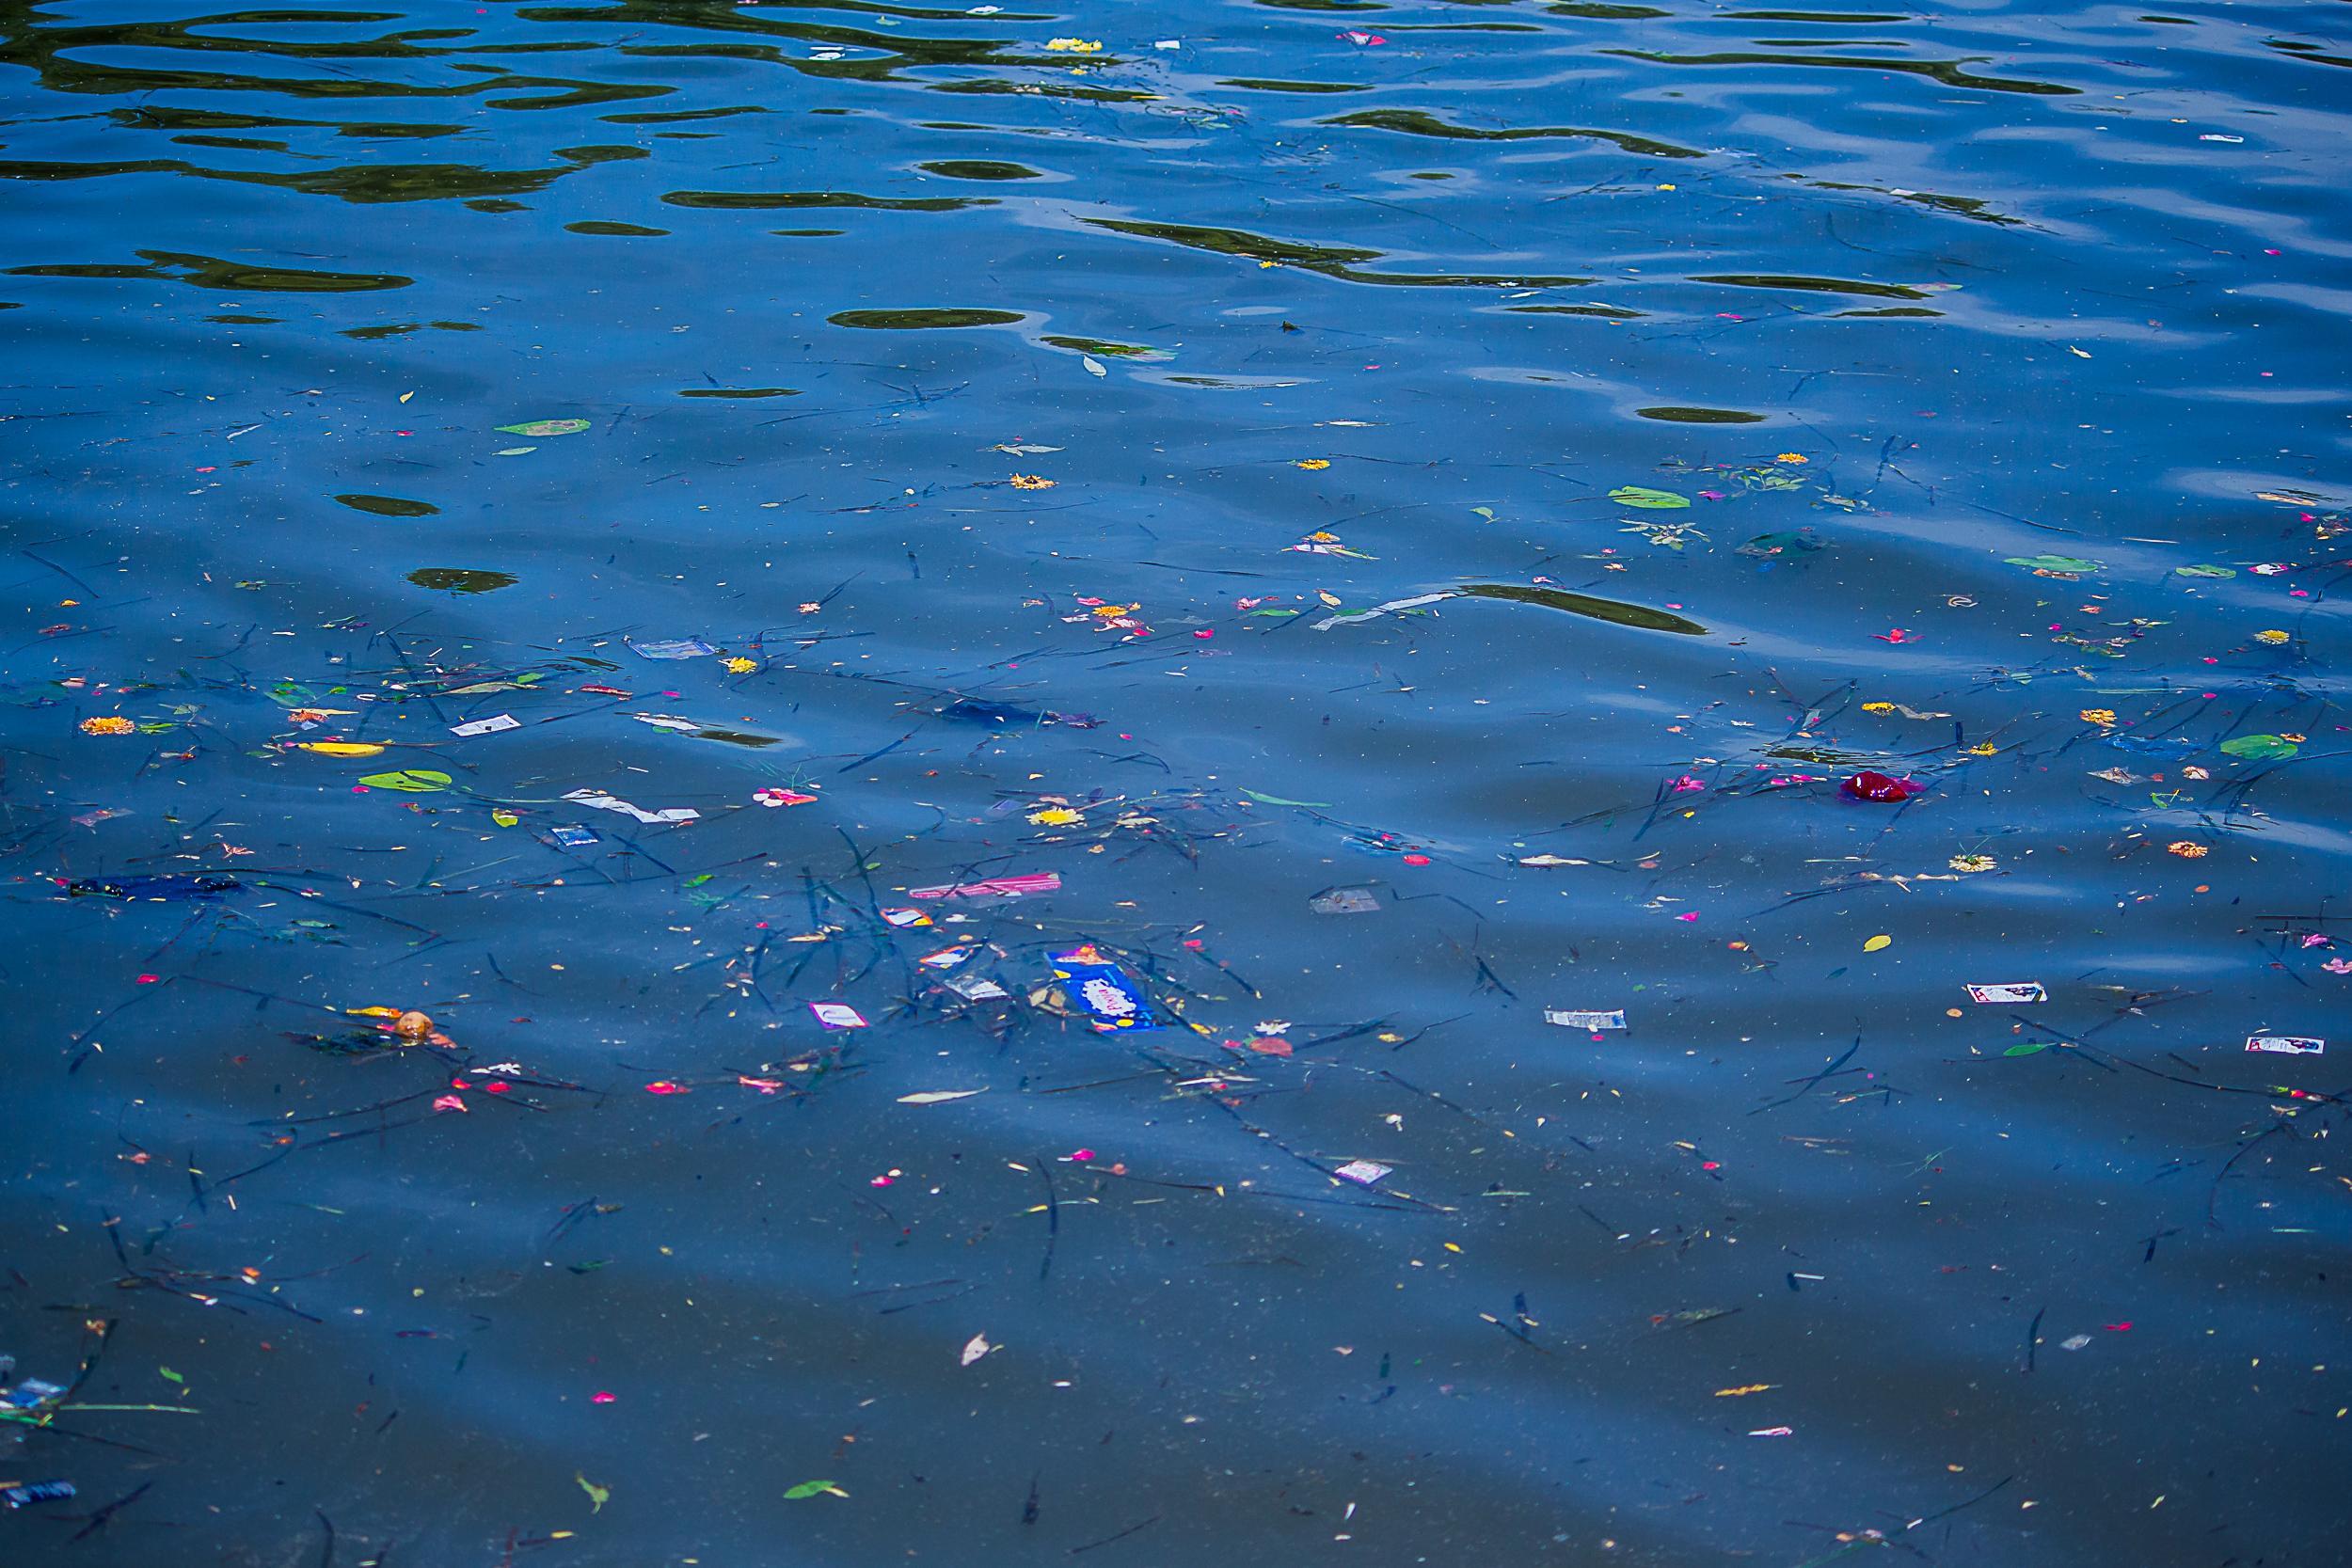 Waste material floating in a river